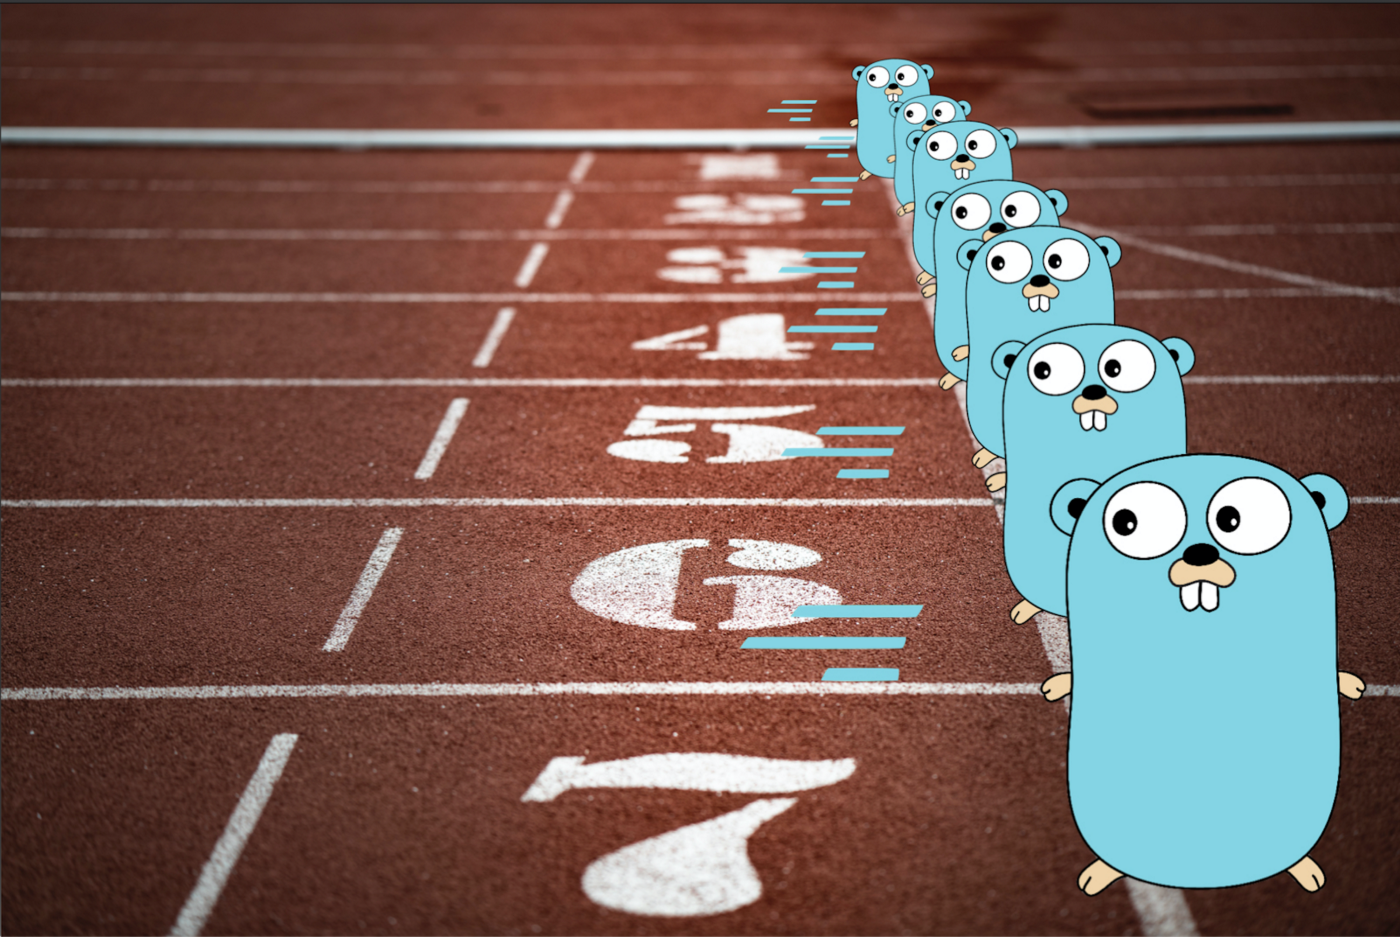 Go mascot on a running track